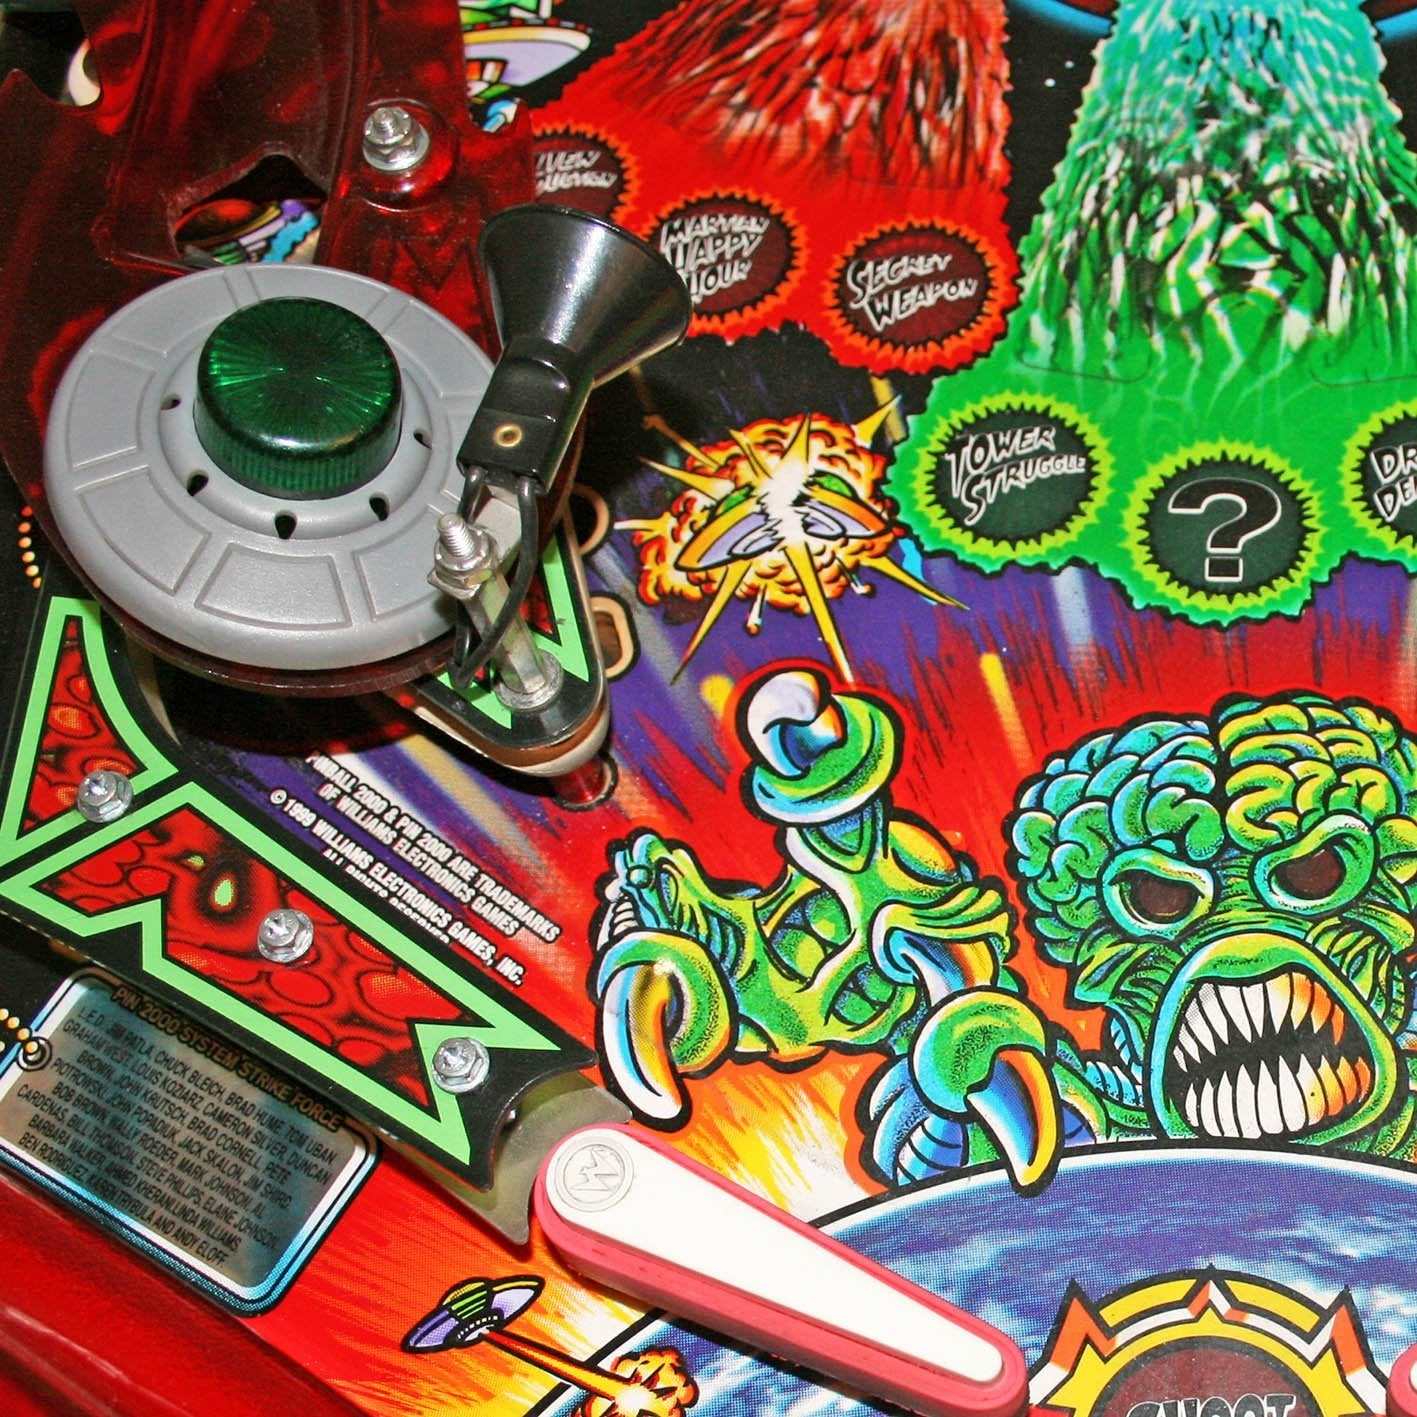 1999 Revenge From Mars Pinball Machine by Bally 'Coming Soon'